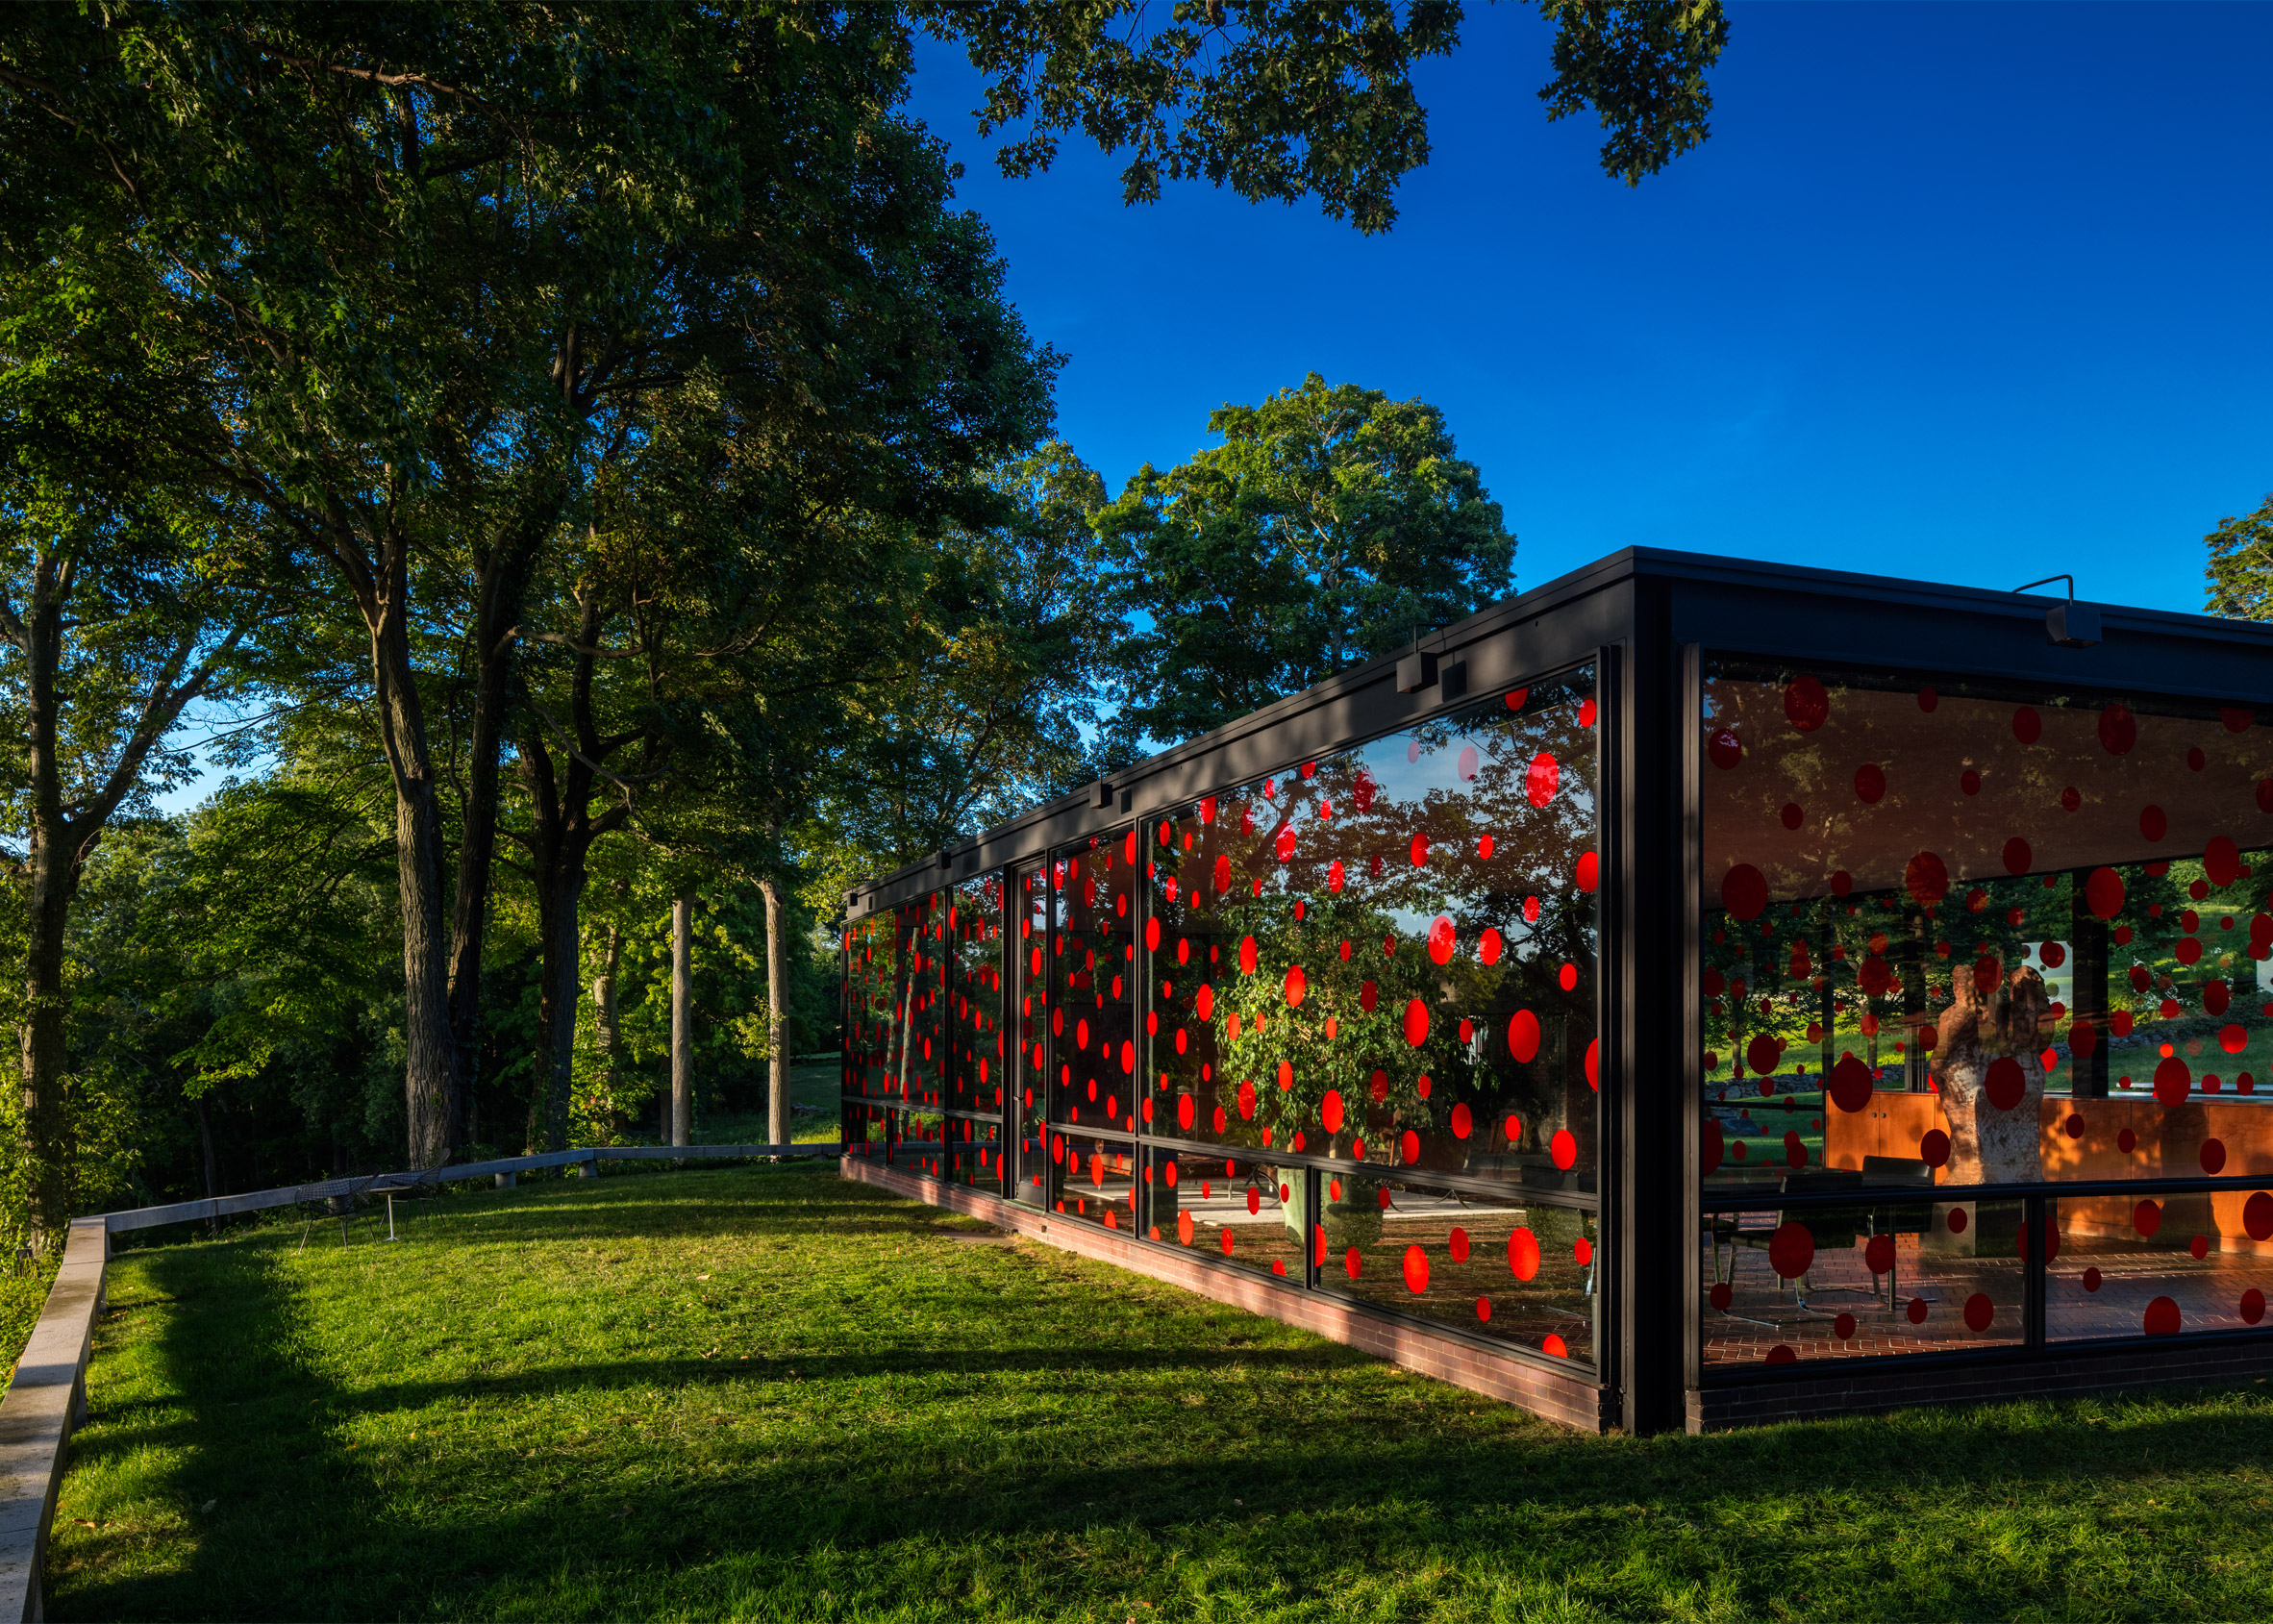 Yayoi Kusama plasters red dots across Philip Johnson's Glass House